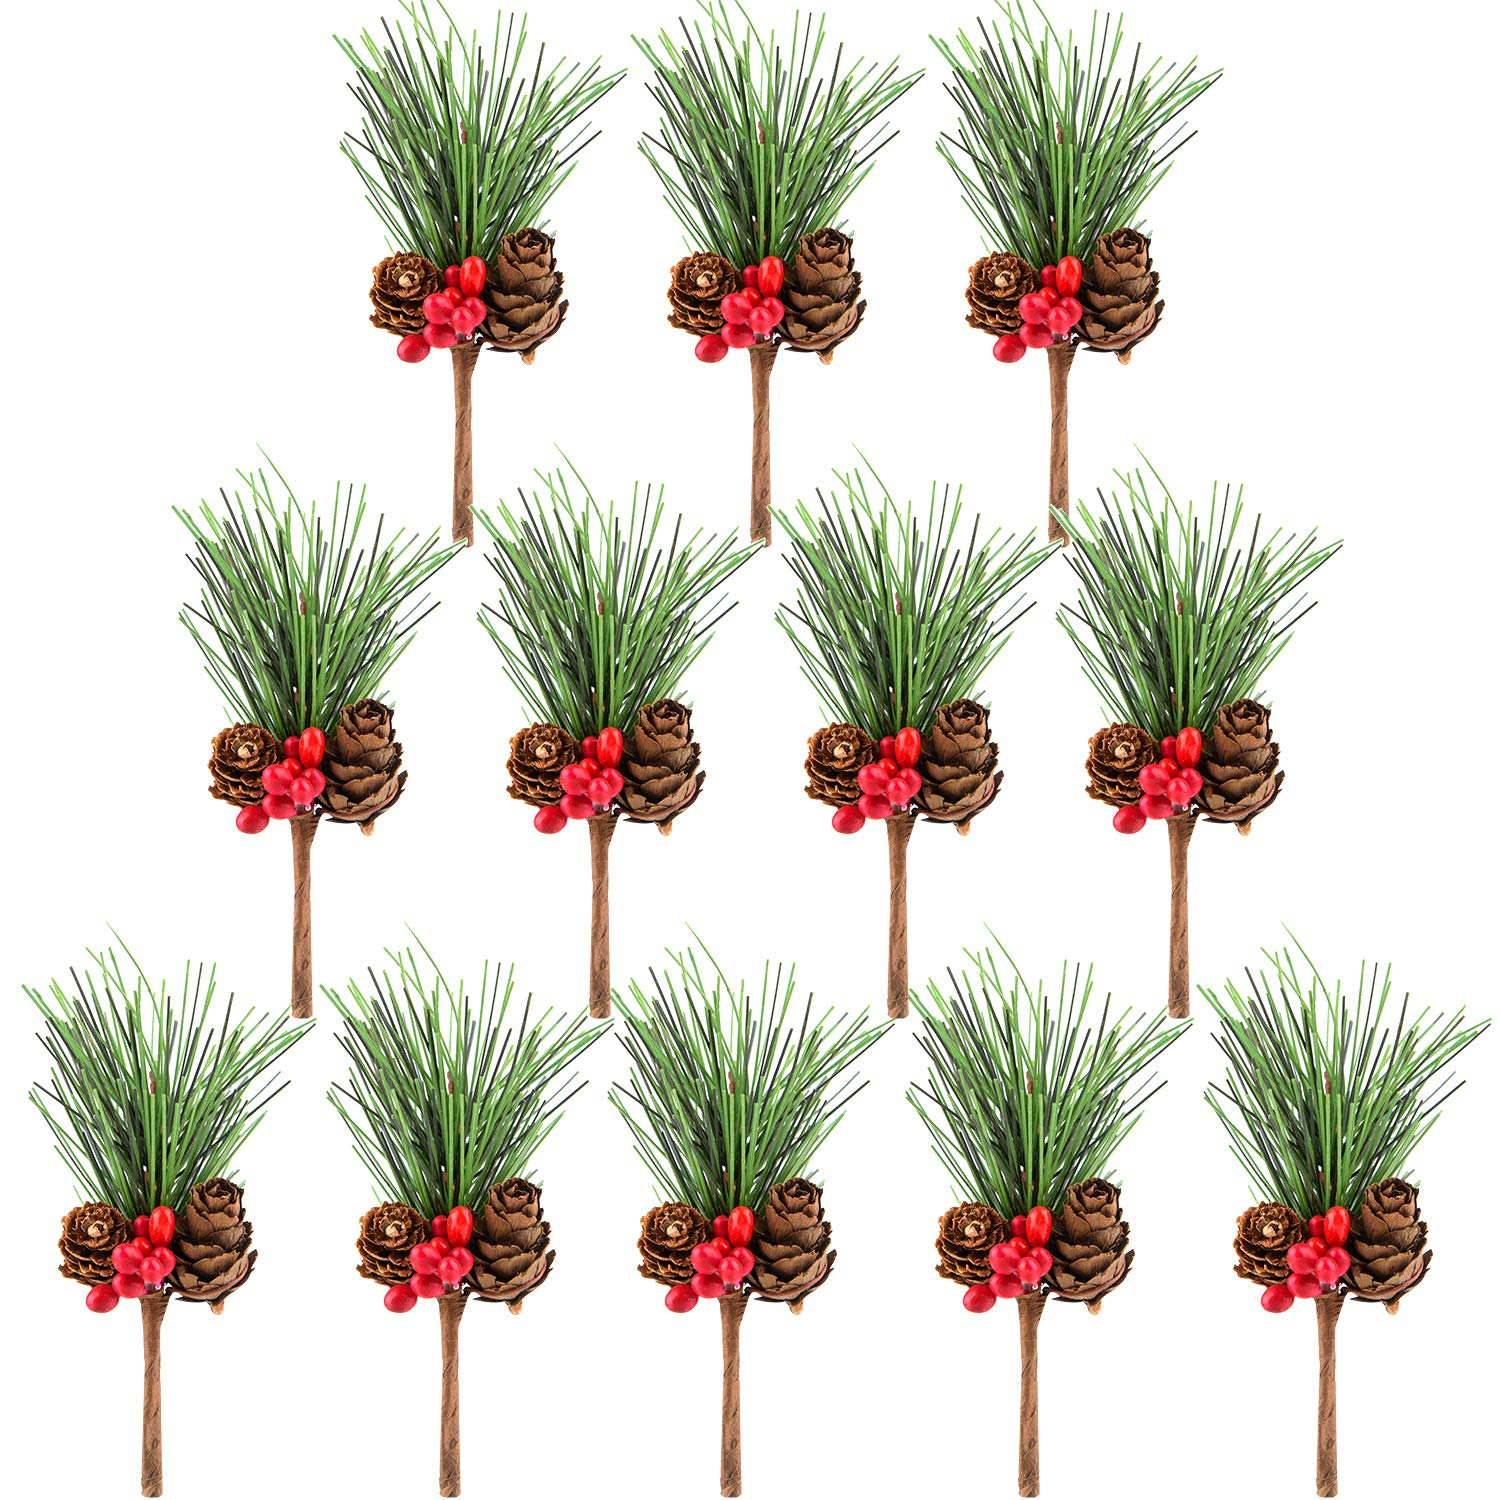 TUPARKA 12 PCS Artificial Pine Cone Picks Decor Holly Berry Stems Picks for Christmas Flower Arrangements Wreaths Decorations and Holiday Crafts and Floral Projects Decorations